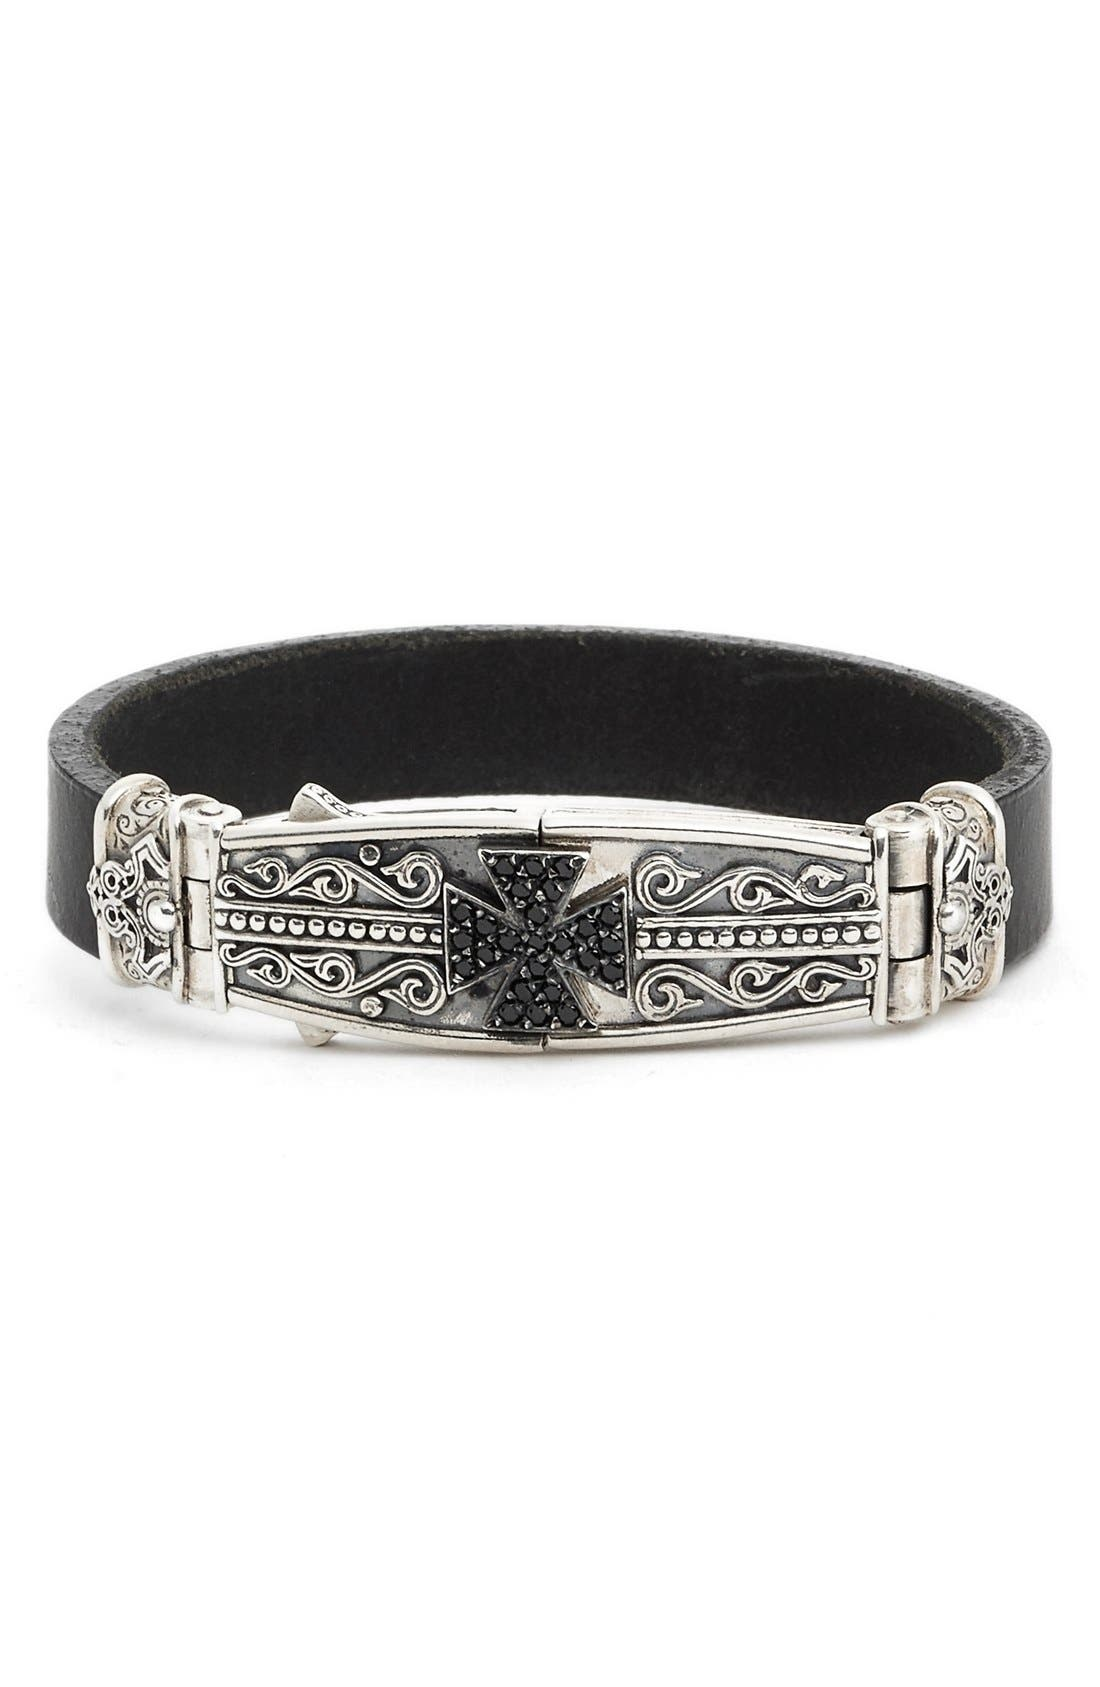 Plato Maltese Cross Leather Bracelet,                             Main thumbnail 1, color,                             SILVER